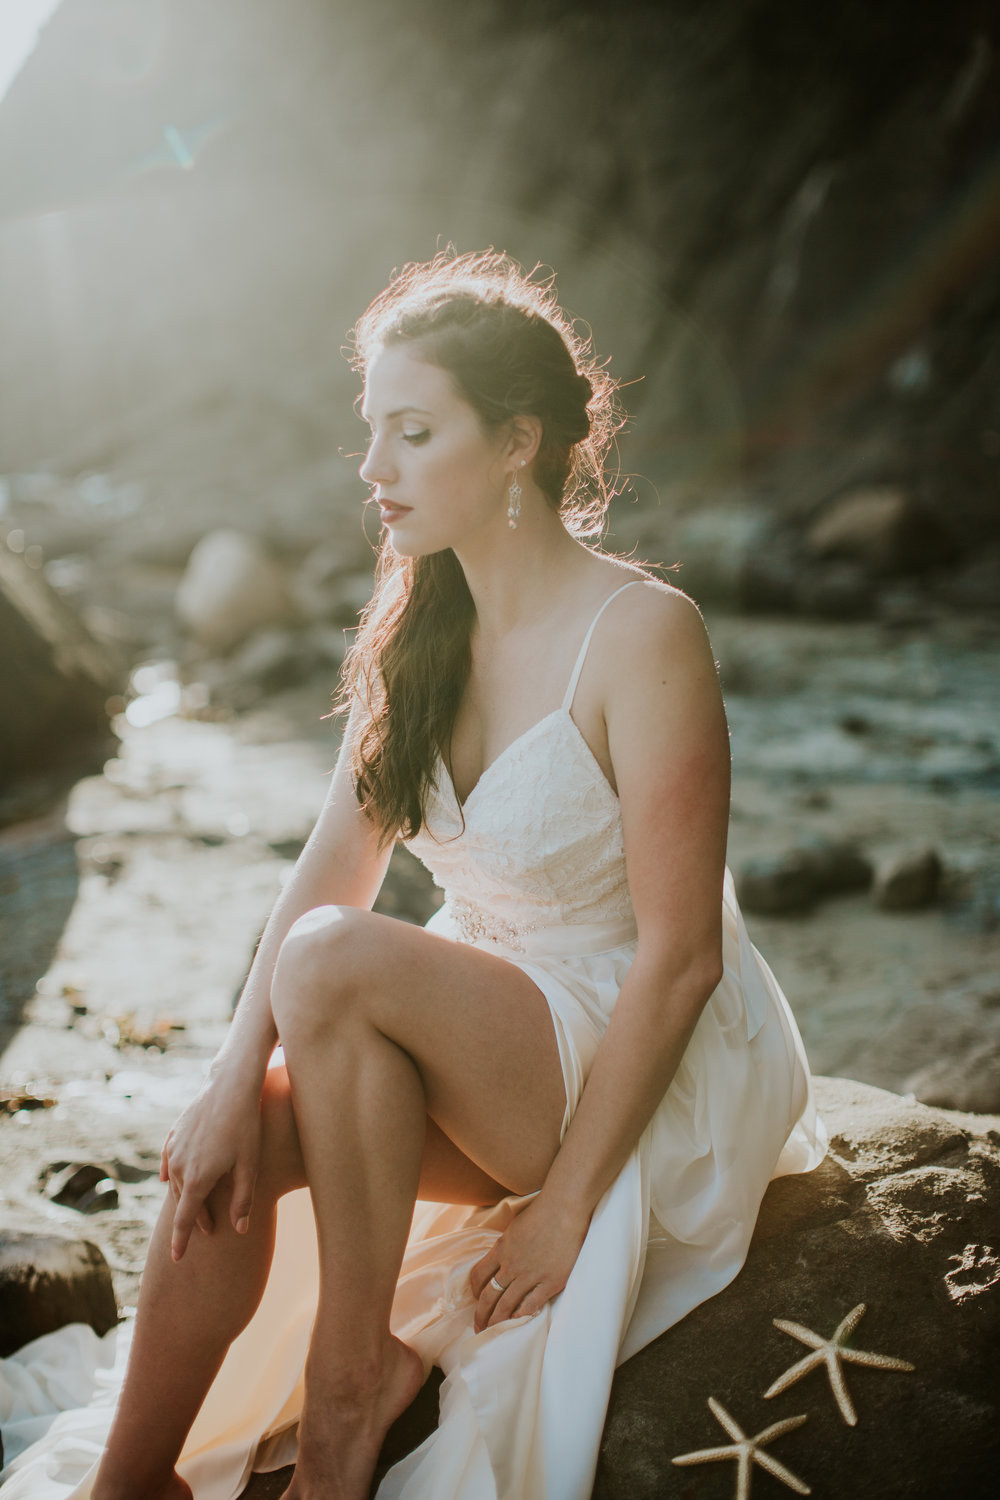 Port-Angeles-Salt-Creek-beach-wedding-bride-PNW-olympic-peninsula-photographer-Kayla-Dawn-Photography-outdoors-golden-hour-dancer-dress (24).jpg